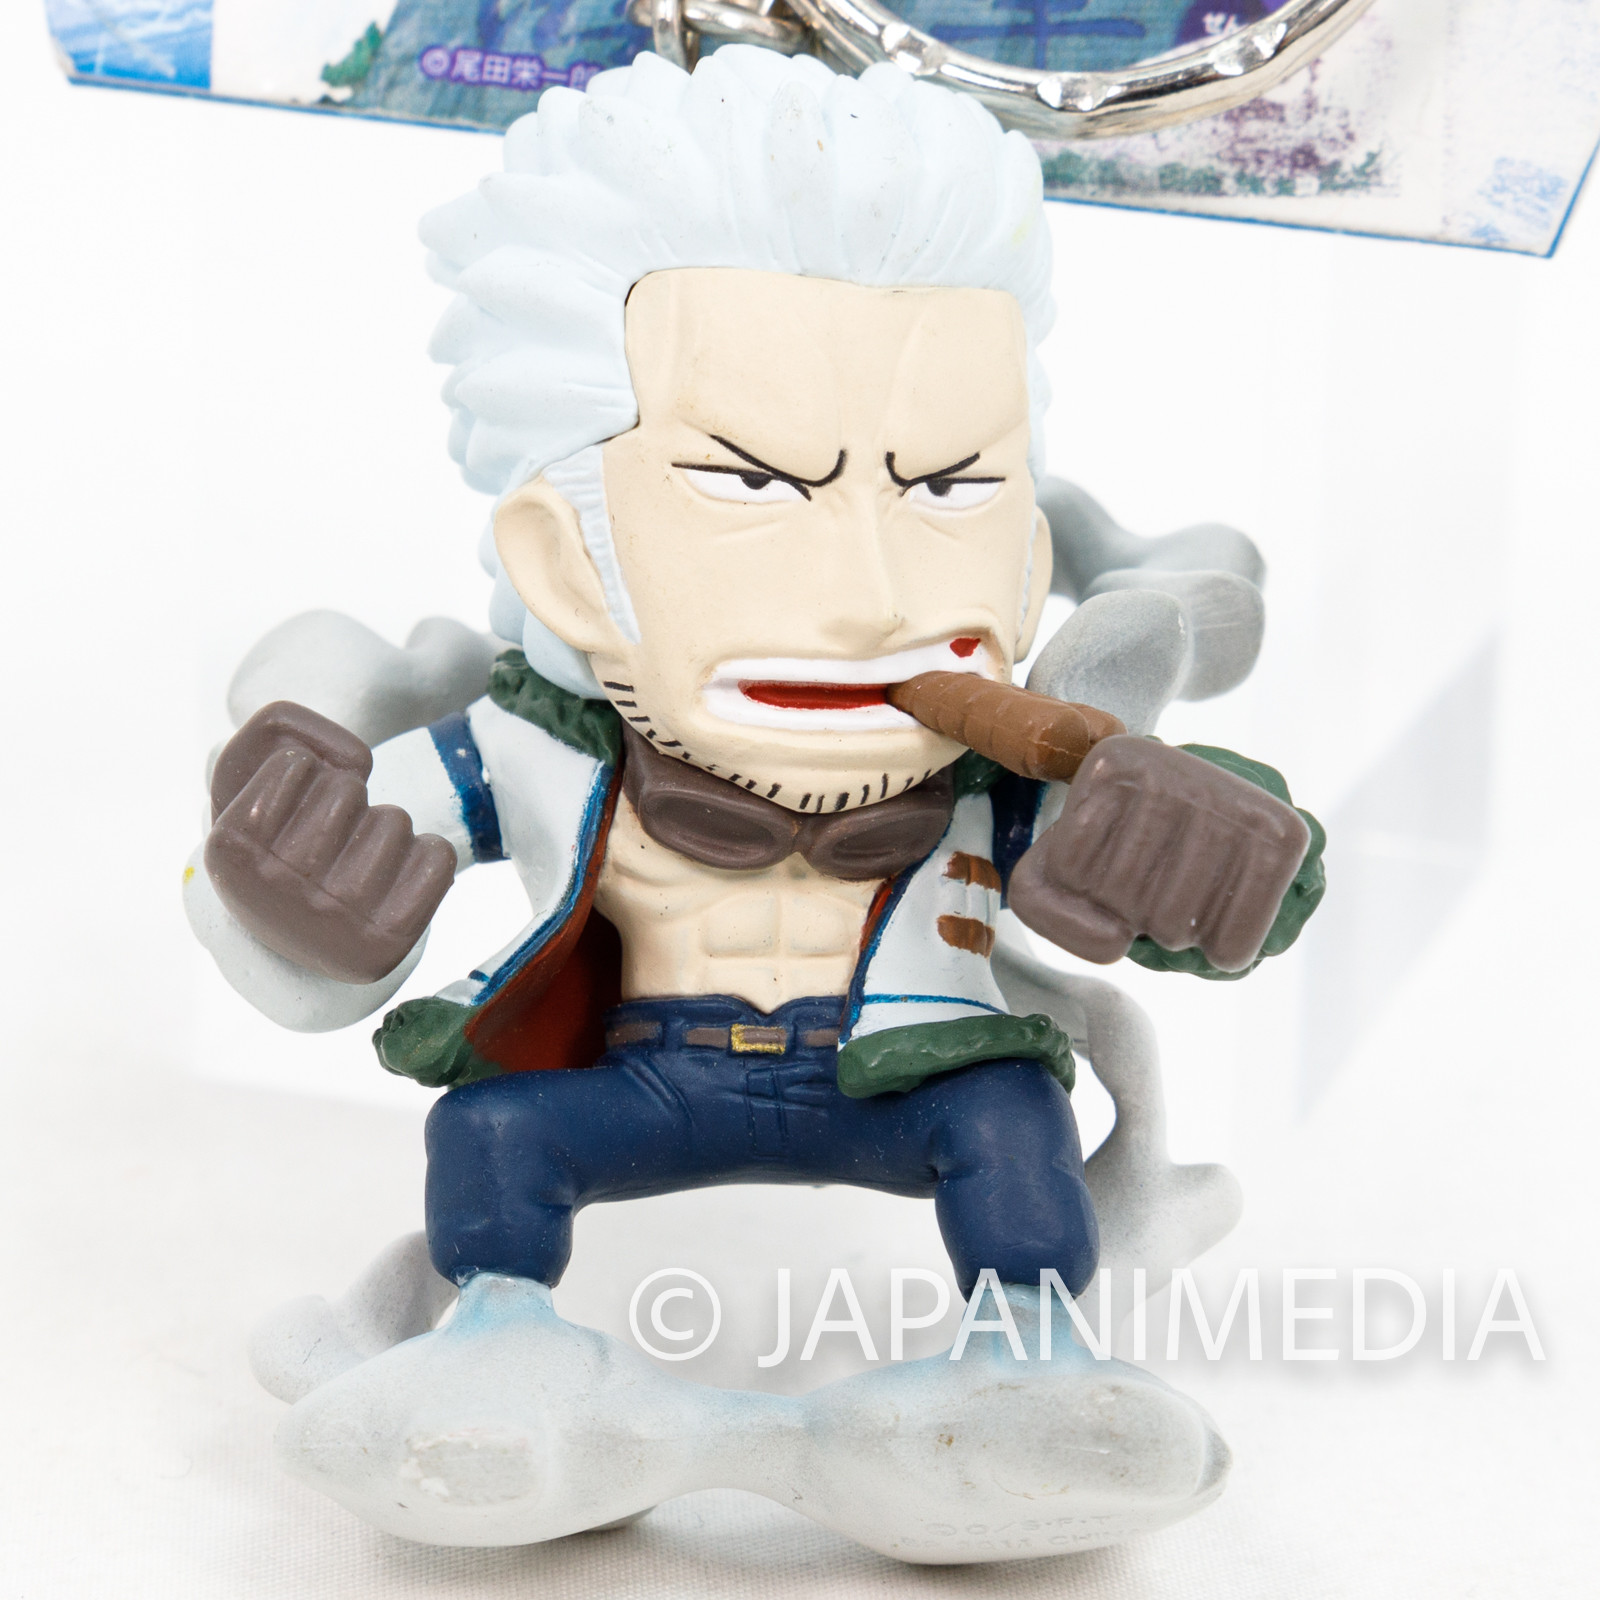 One Piece Smoker Figure Keychain Banpresto JAPAN ANIME